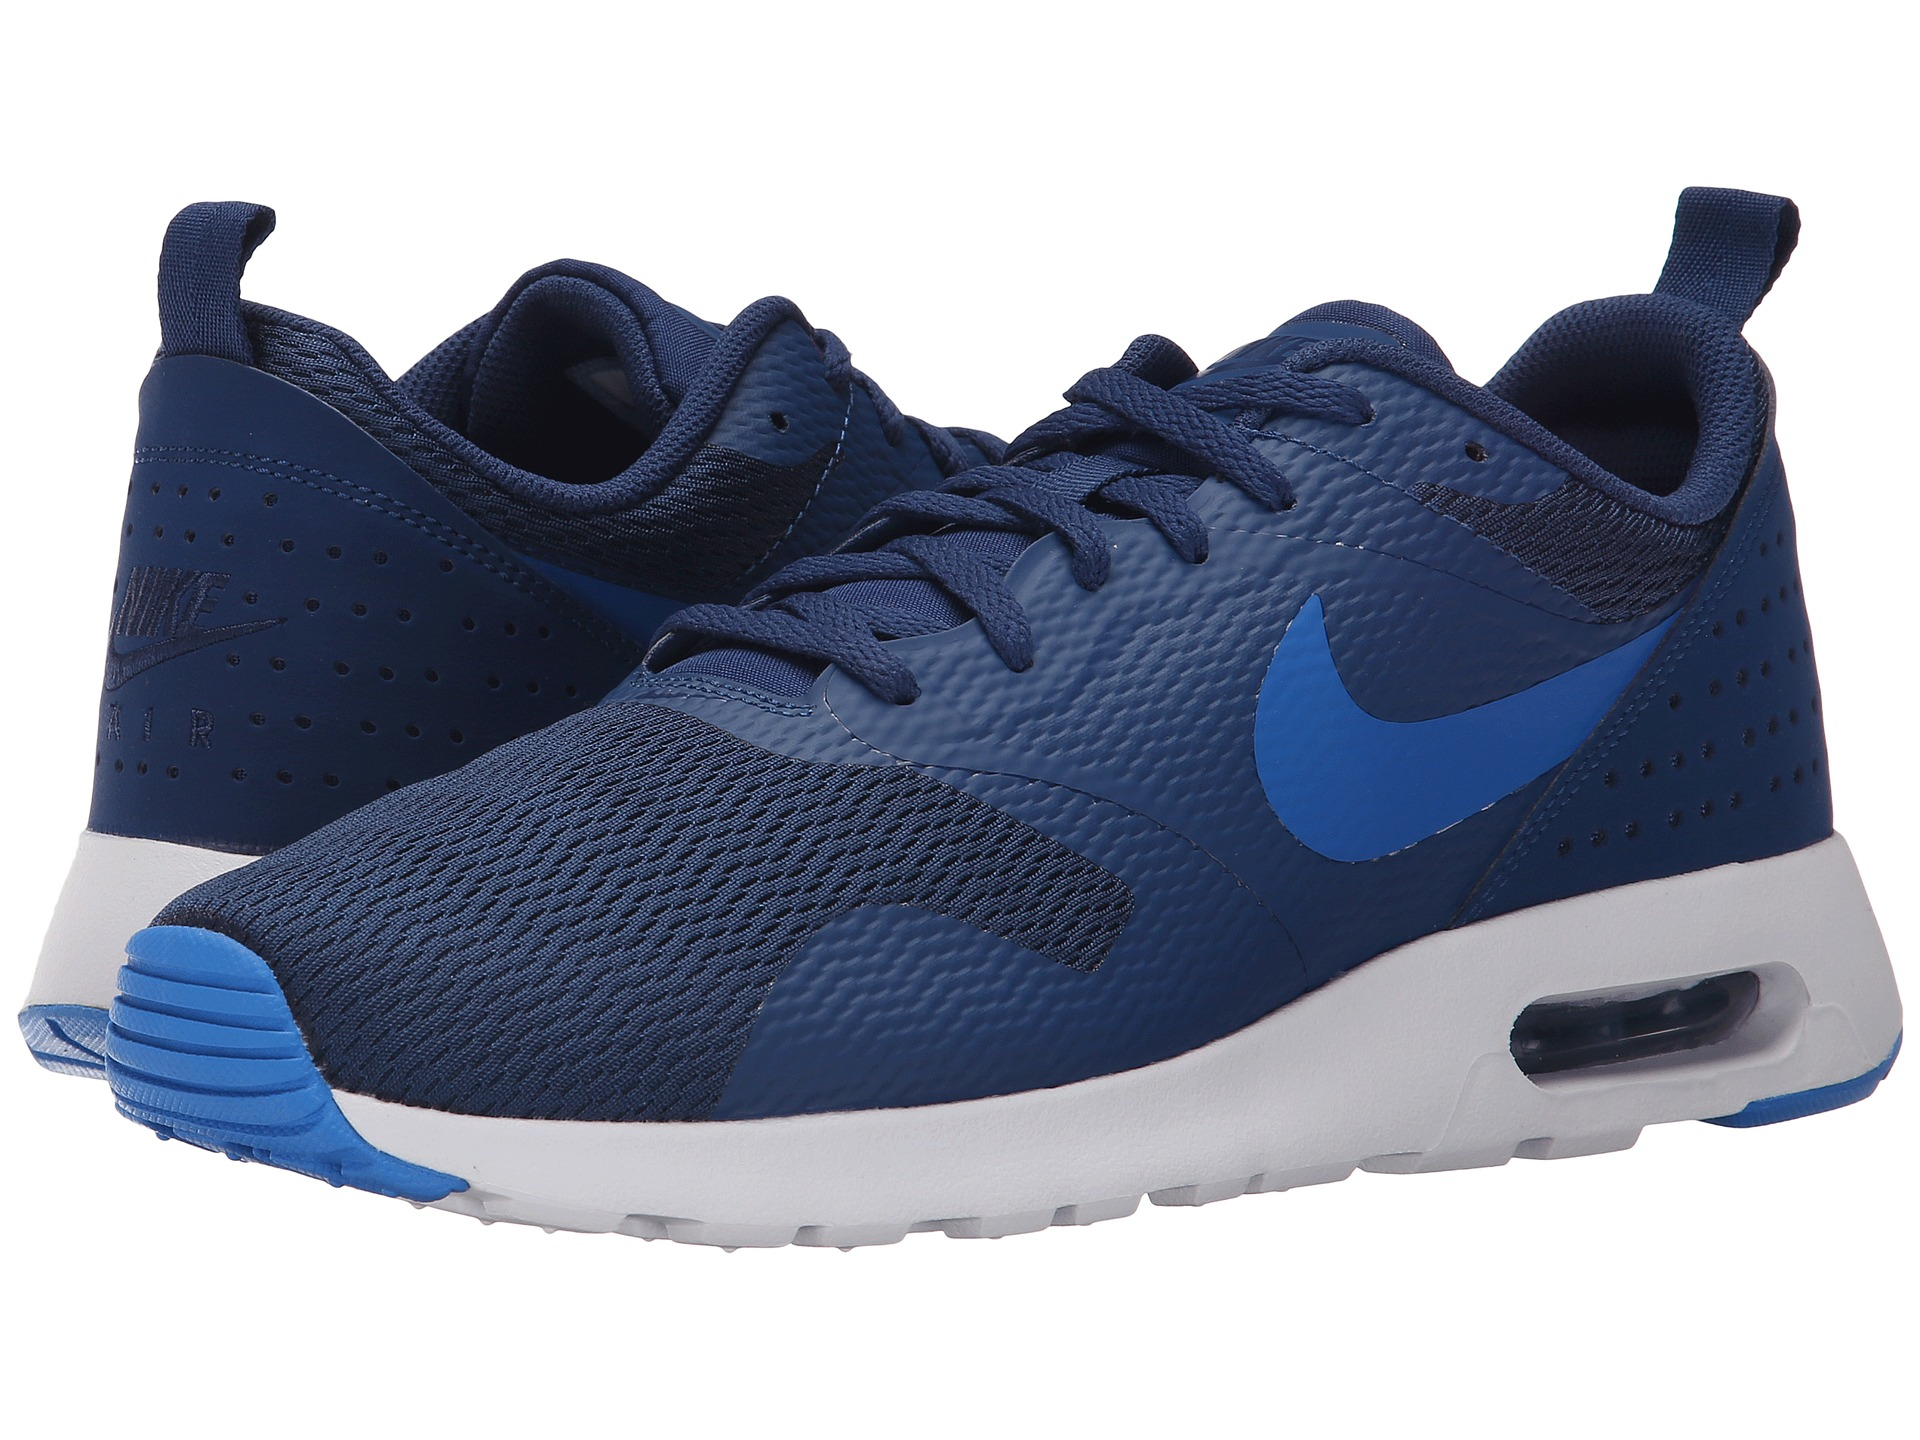 watch f602c e2d36 Nike Air Max Tavas Low-Top Sneakers in Blue for Men - Lyst